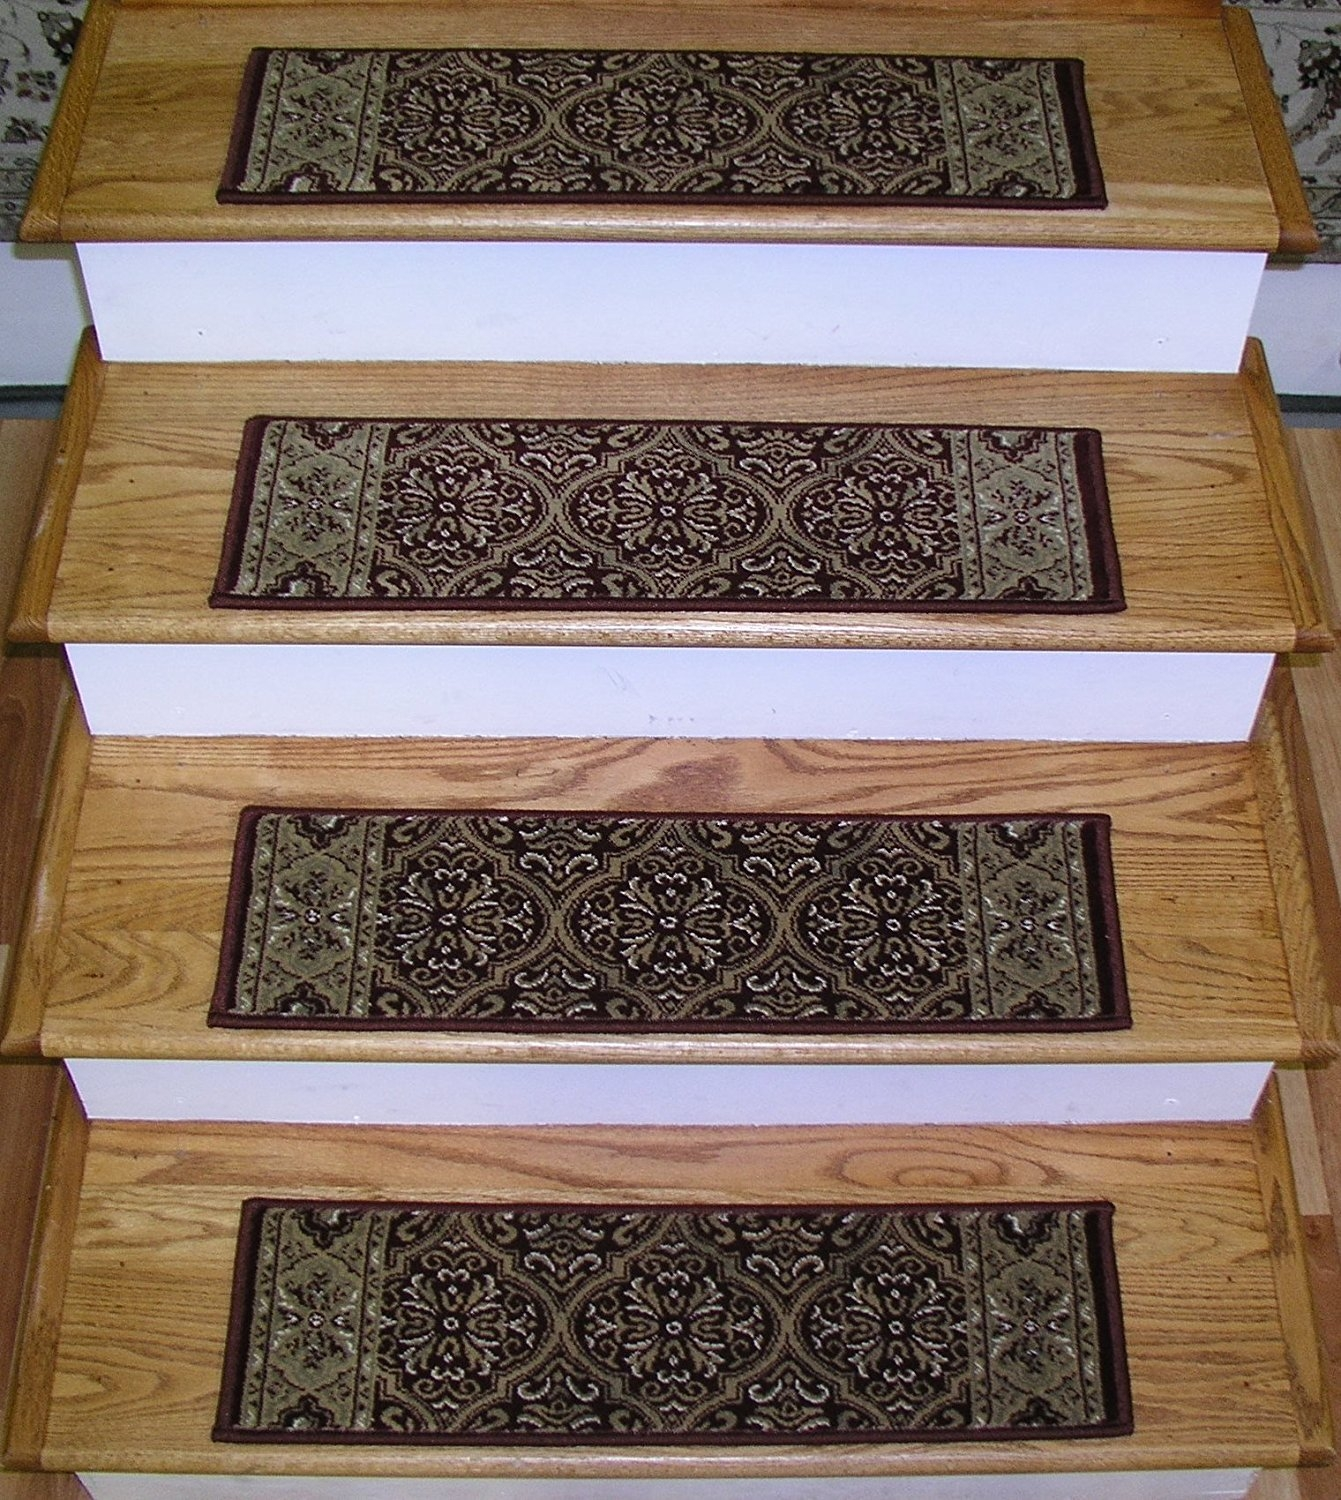 157575 Rug Depot Premium Carpet Stair Treads 26 X 8 Stair Throughout Premium Carpet Stair Treads (Image 1 of 15)